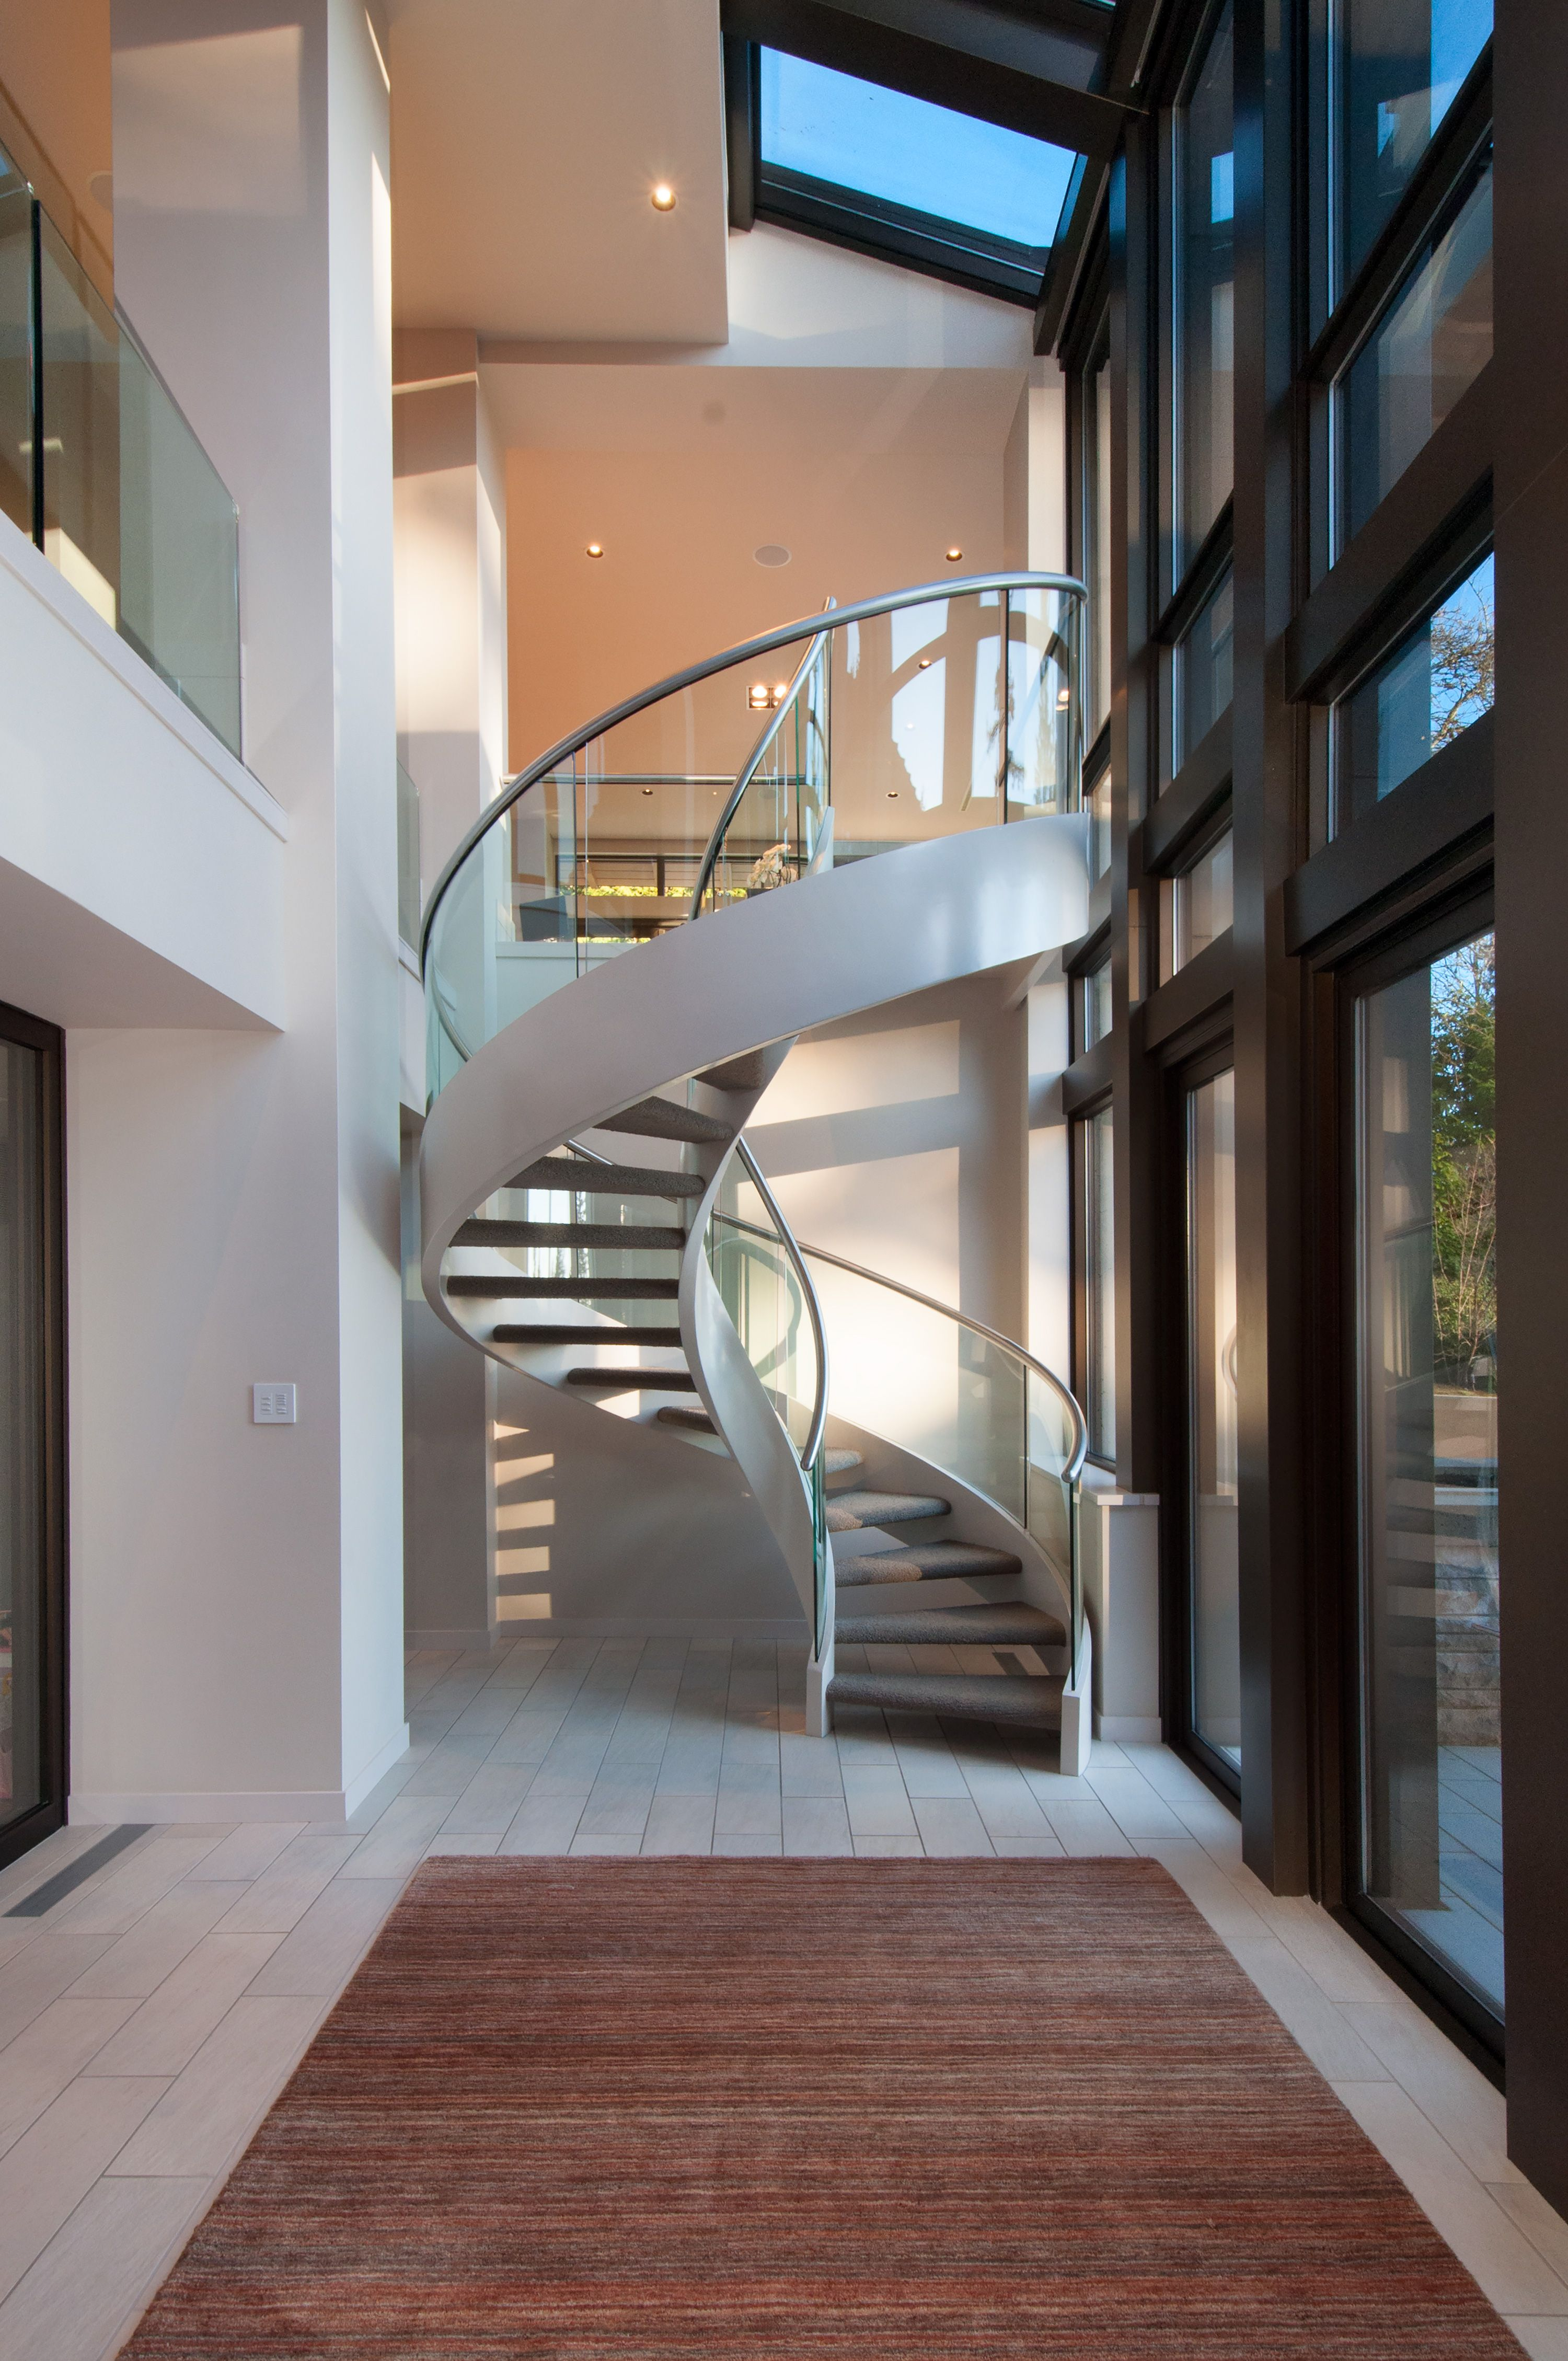 Spiral Staircase In West Vancouver #blurrdMEDIA #architecture #photography